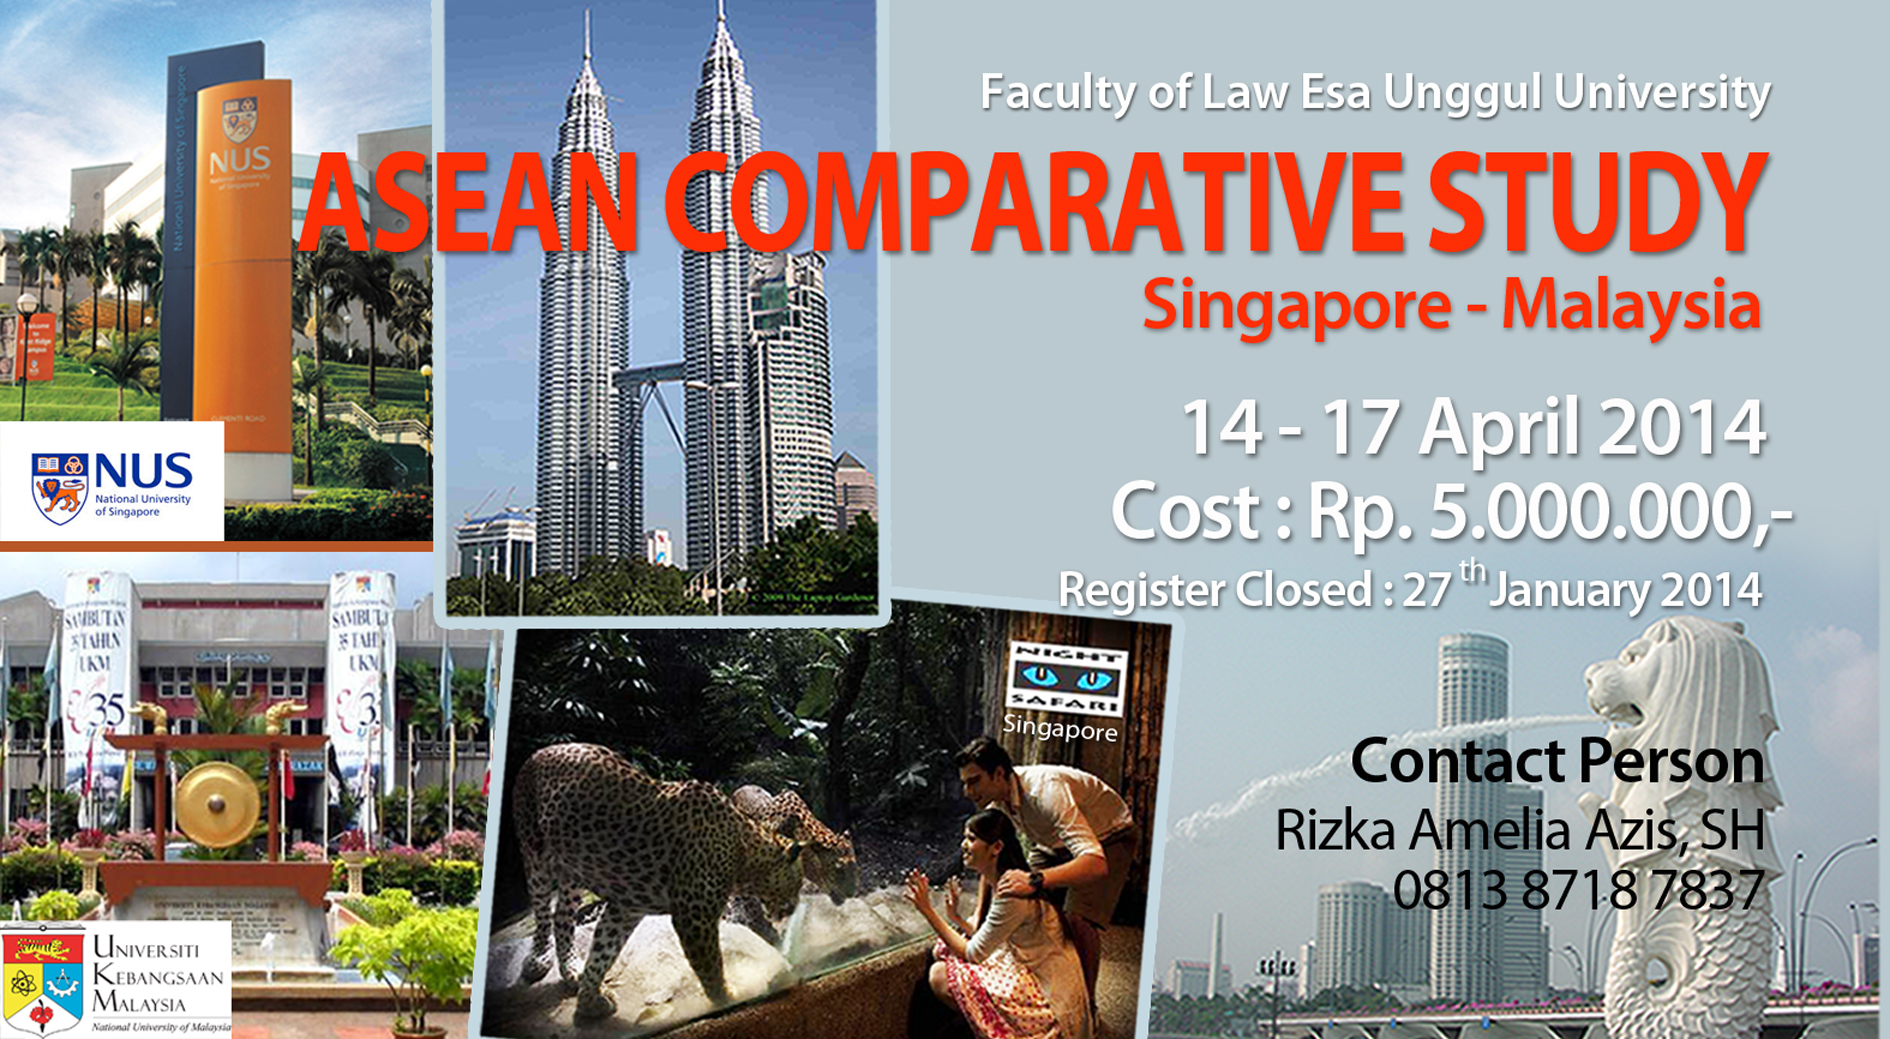 Faculty of Law Esa Unggul University carry on ASEAN Comparative Study to Singapore and Malaysia, 14 -17 April 2014